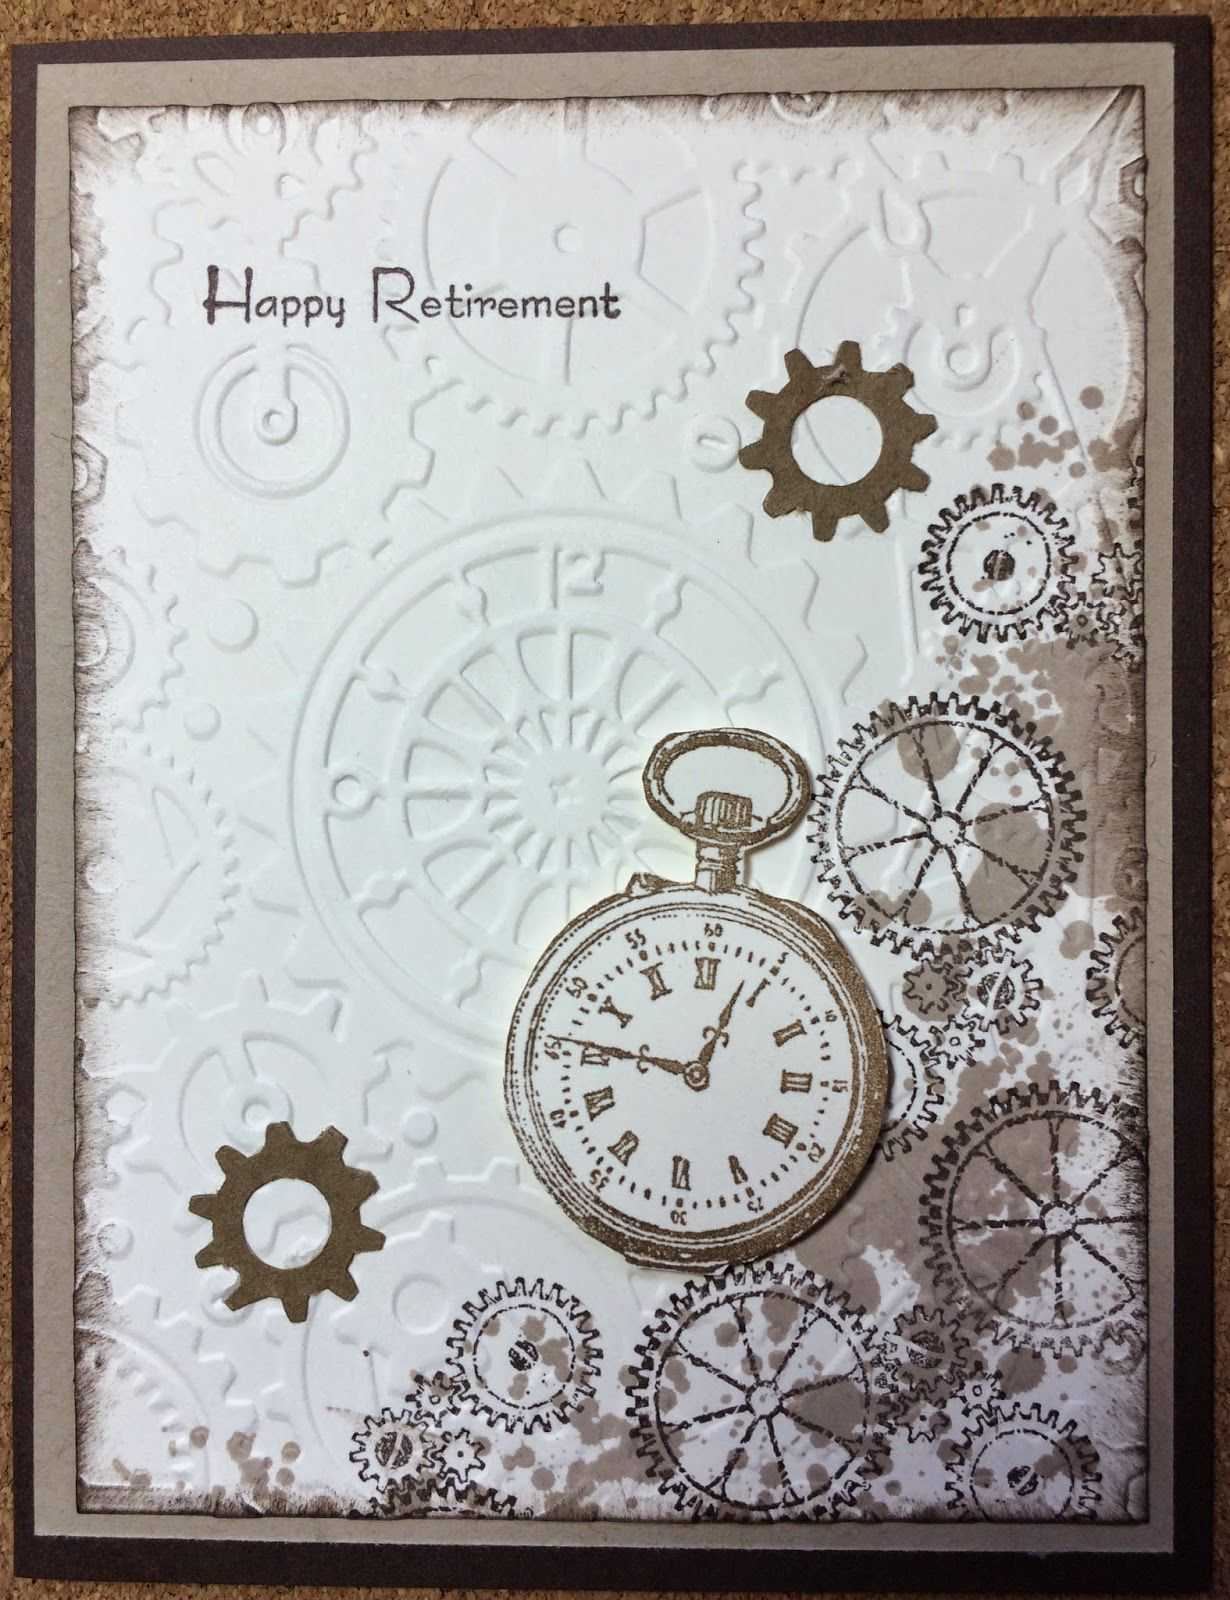 Retirement retirement retirement paper craftingcards